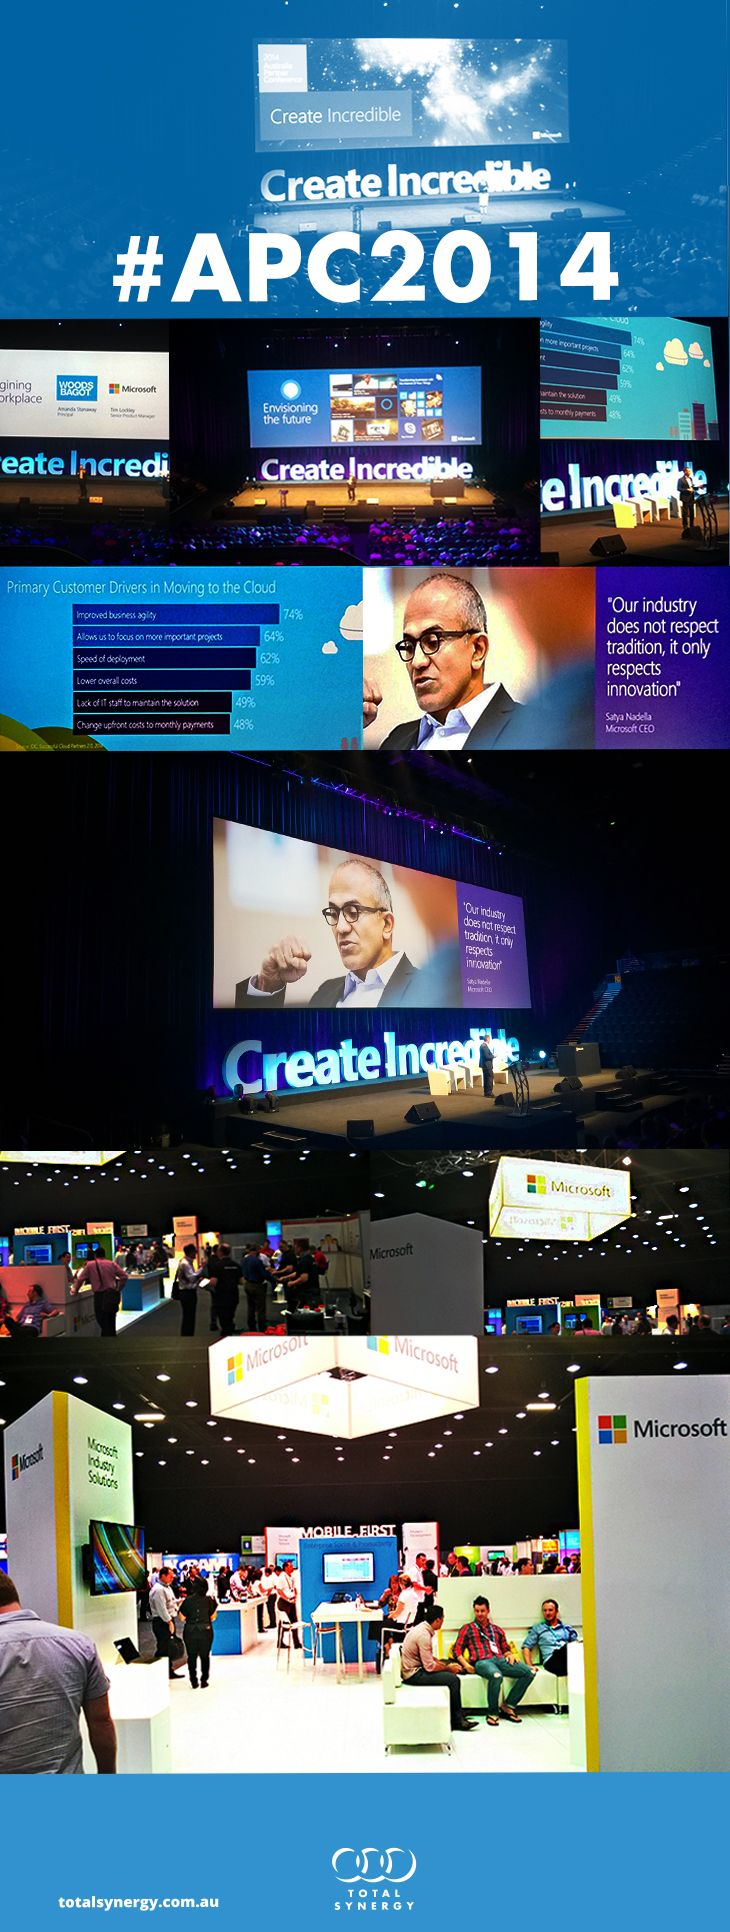 Total Synergy's view of the @microsoft Australian Partner Conference. This year's theme was 'Create Incredible'. #APC2014 2-4 September 2014.